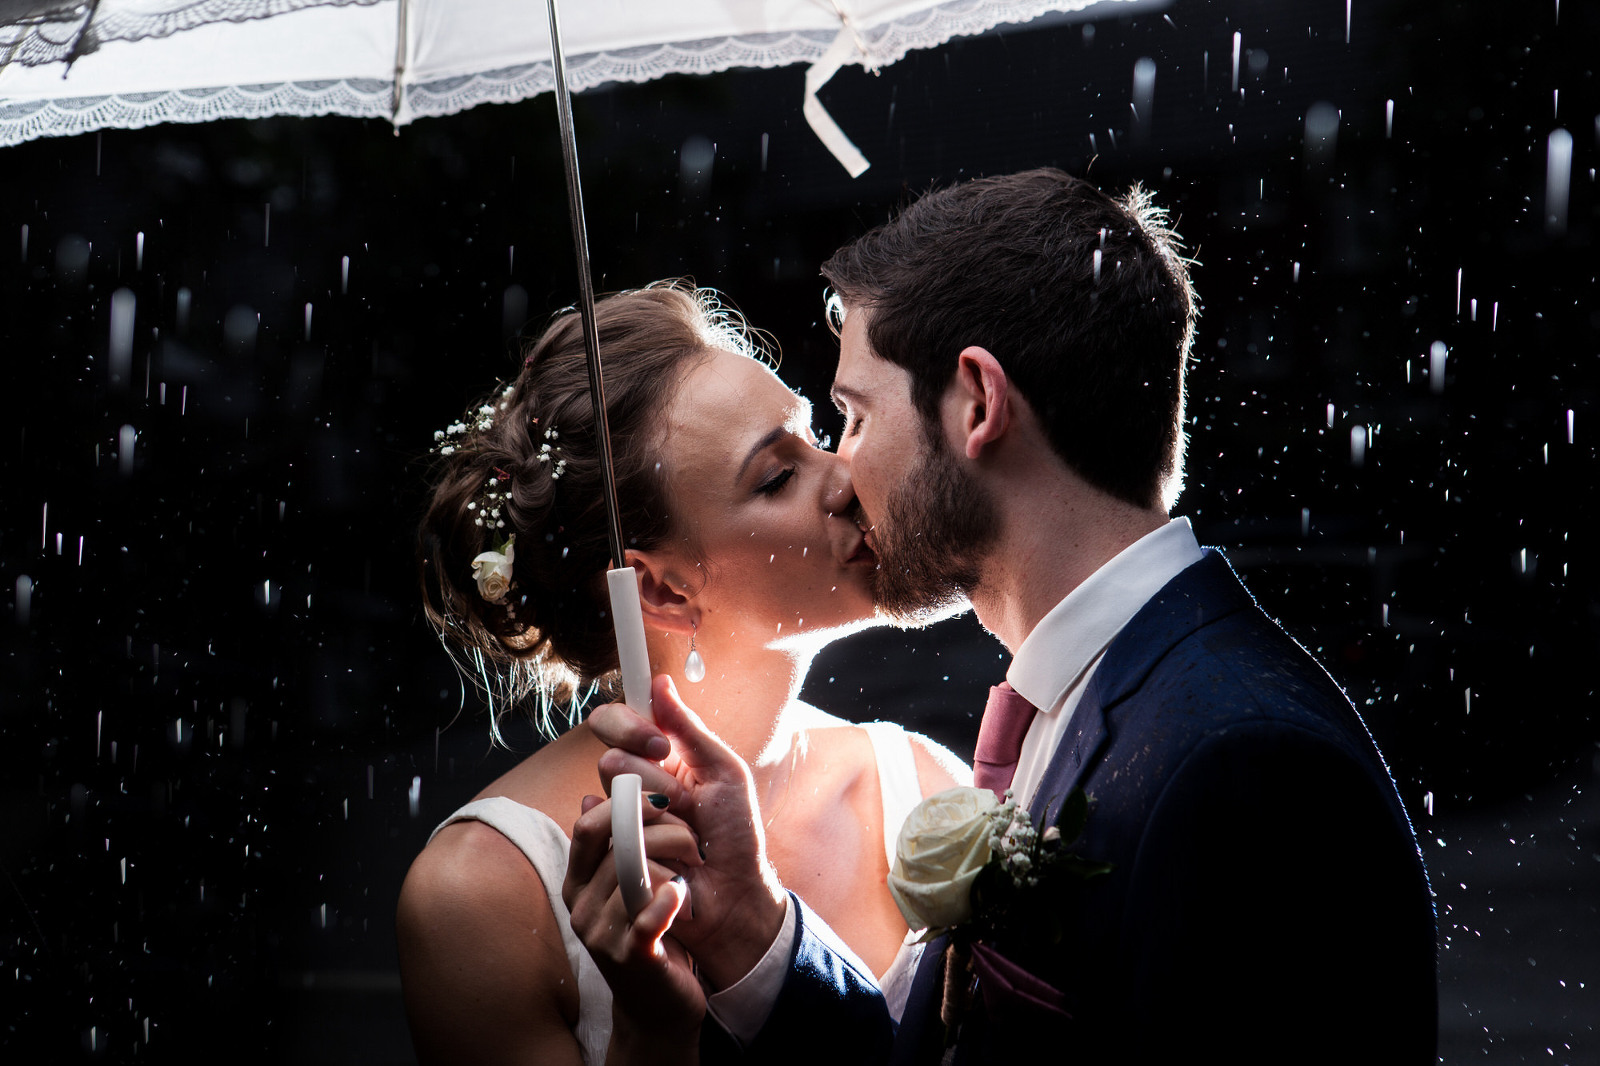 Rainy Wedding Photography - Bride & Groom Kissing in the rain